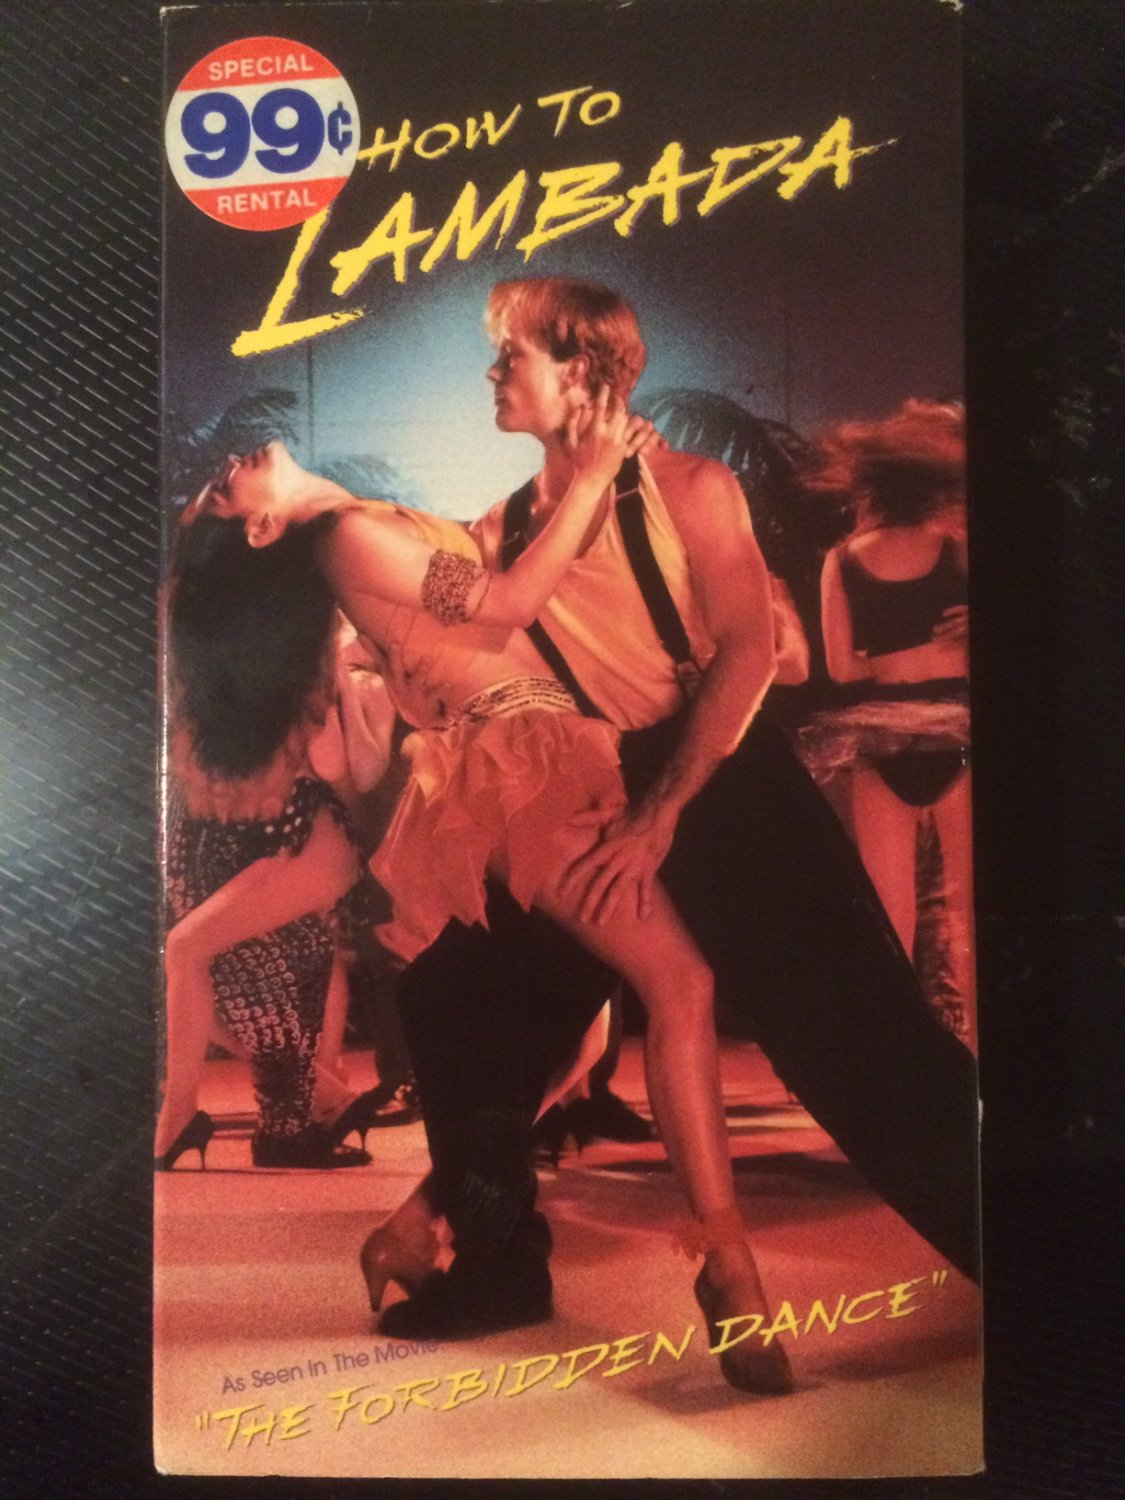 VHS - How to Lambada - Used - NOT ON DVD